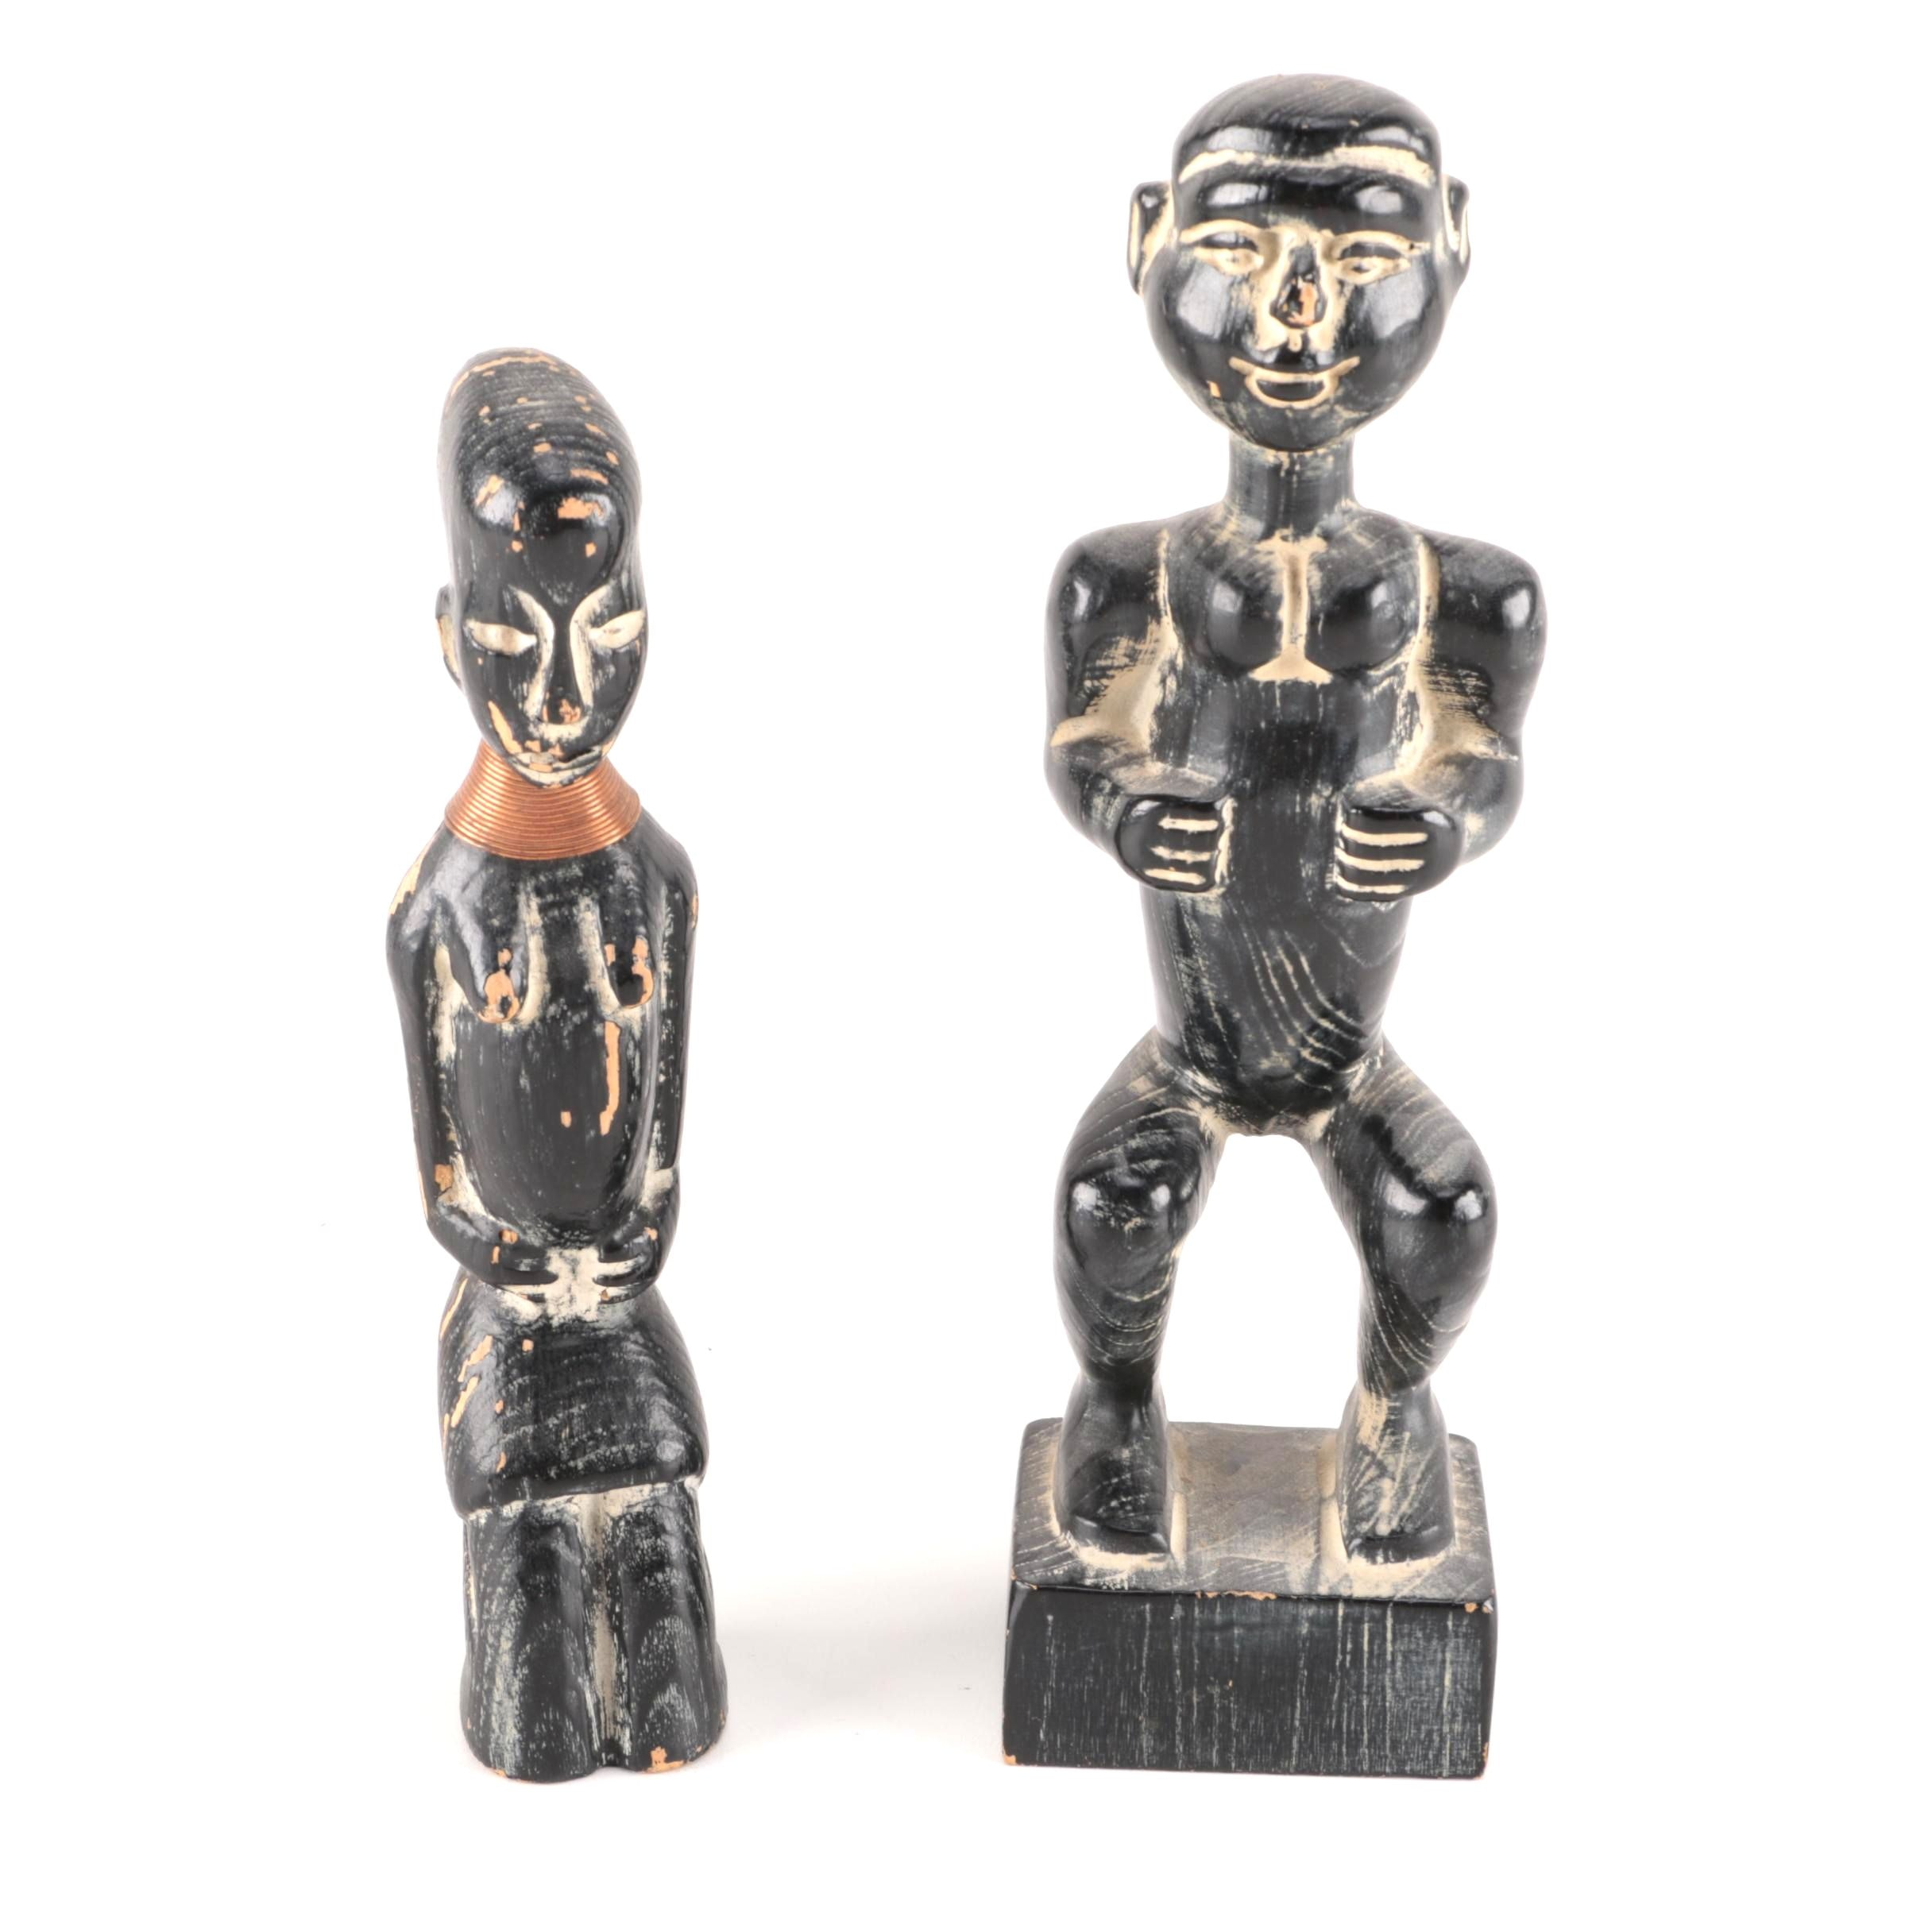 Two Artisan Carved Wooden Figures